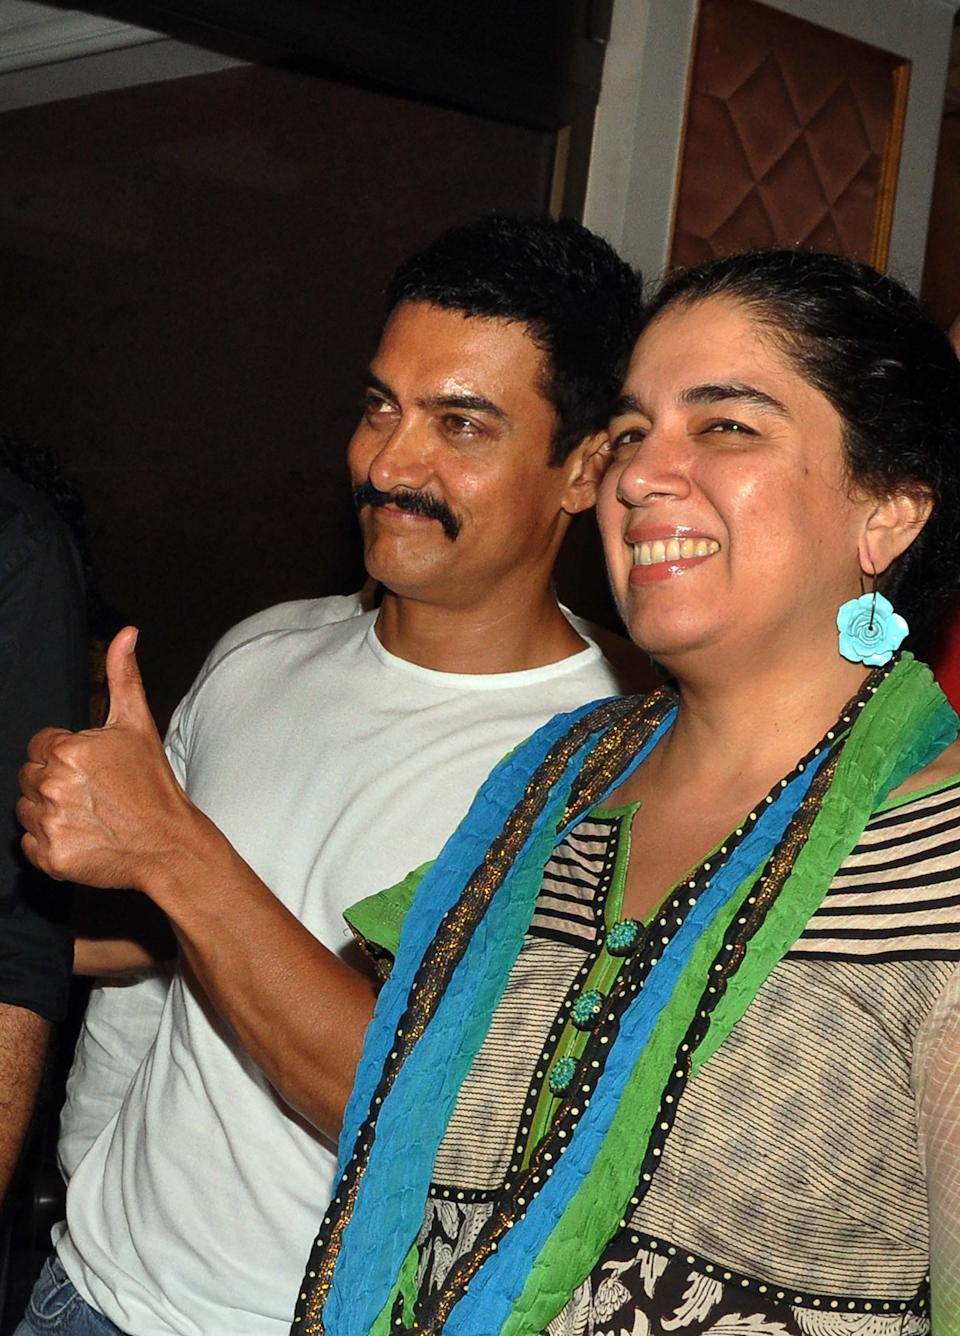 Indian Bollywood film actor Aamir Khan (L) and his first and former wife Reena Dutta attend the tenth anniversary celebration party of Hindi film 'Lagaan' in Mumbai on June 15, 2011.  PHOTO/STR (Photo credit should read STR/AFP via Getty Images)